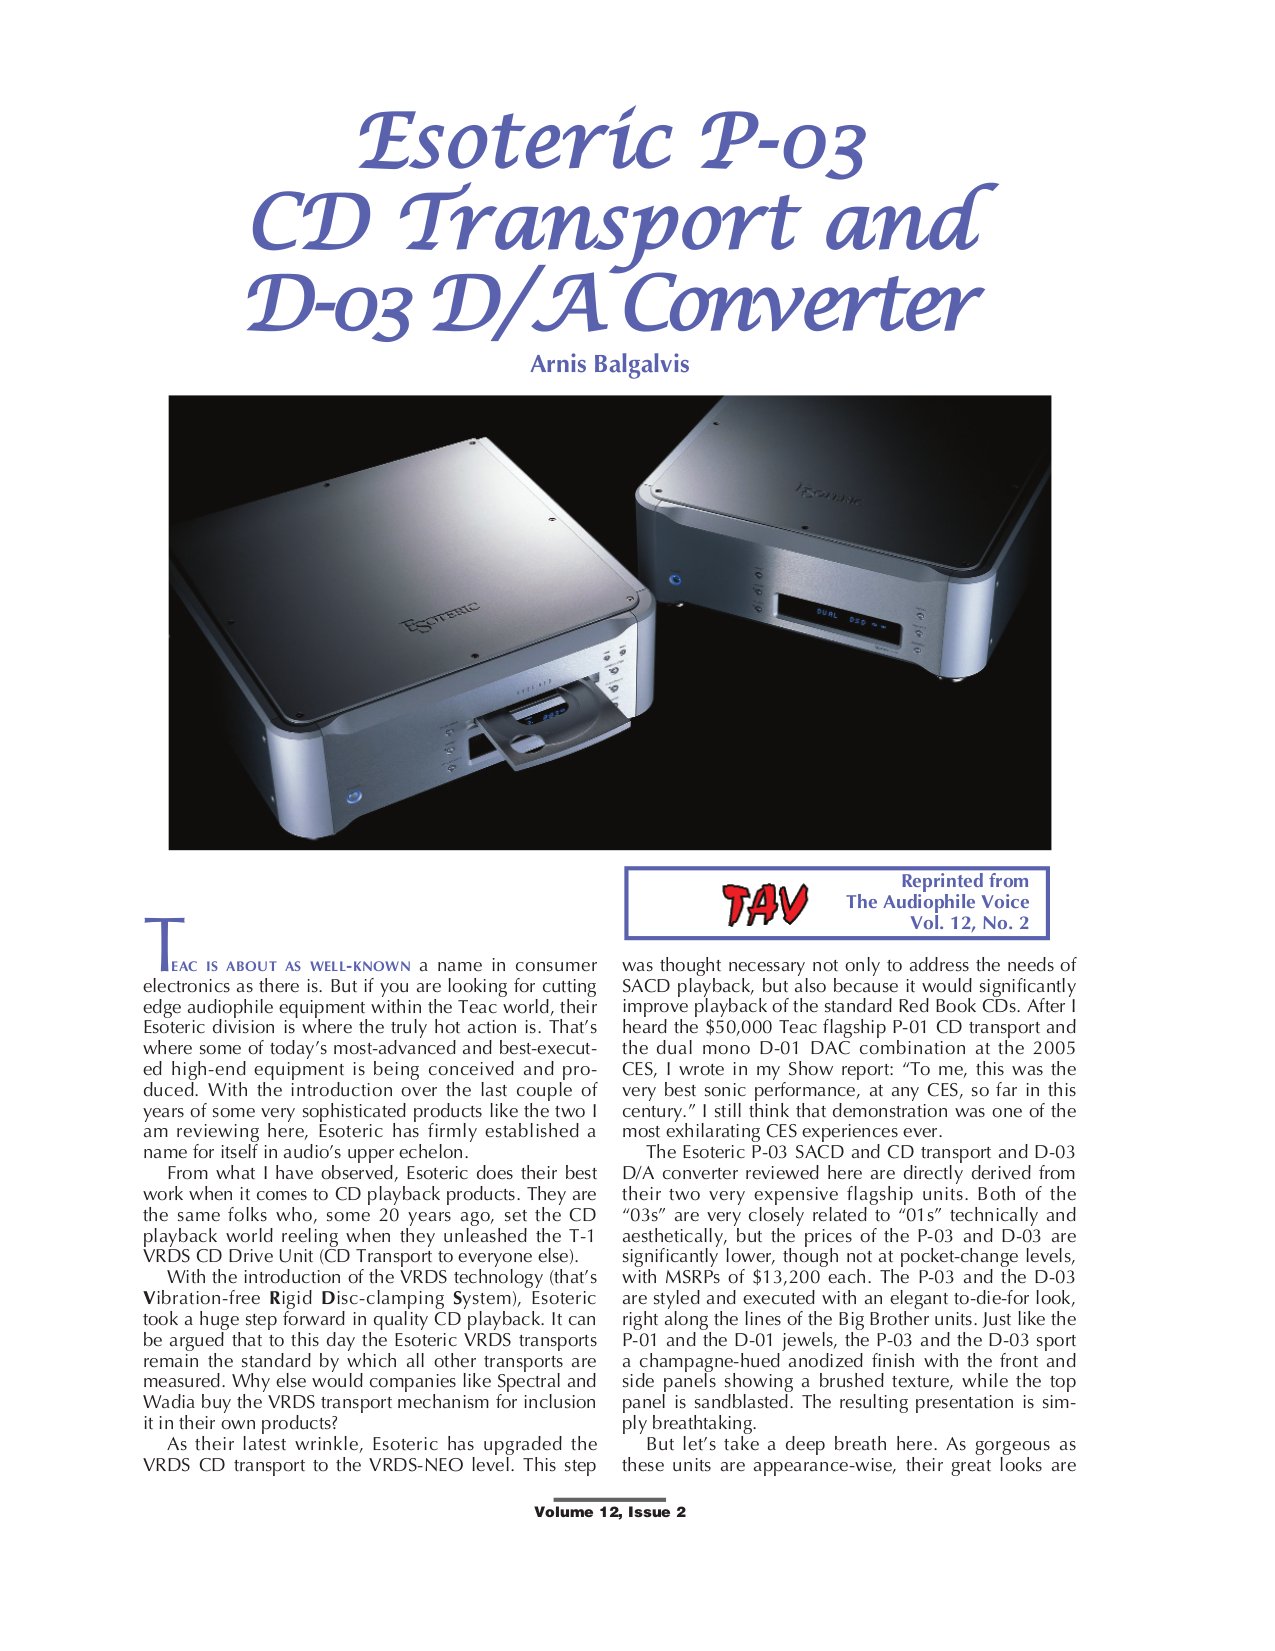 pdf for Teac Other D-01 Converter manual